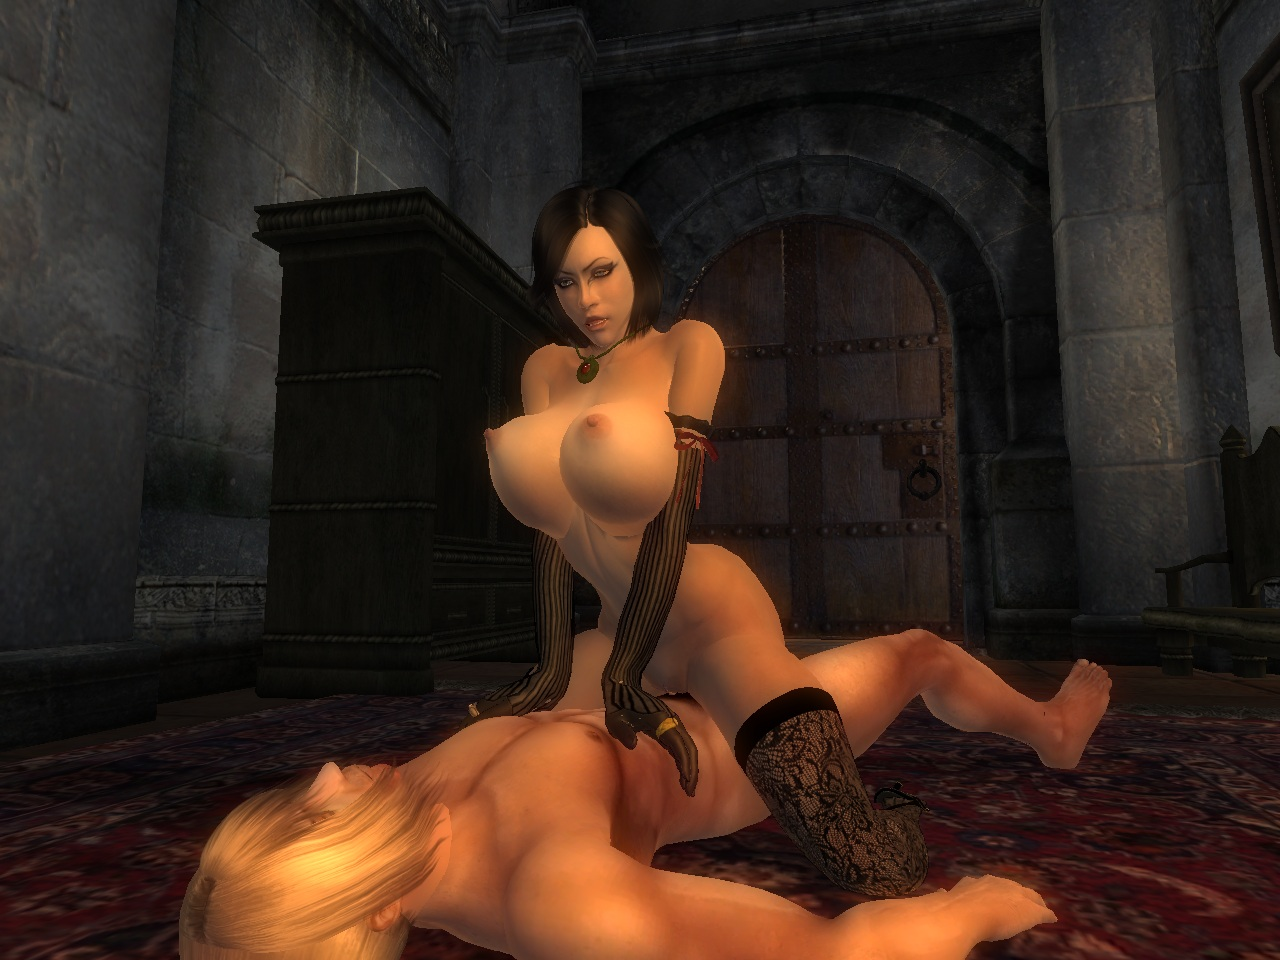 Oblivion japanese sex mod softcore sport girl